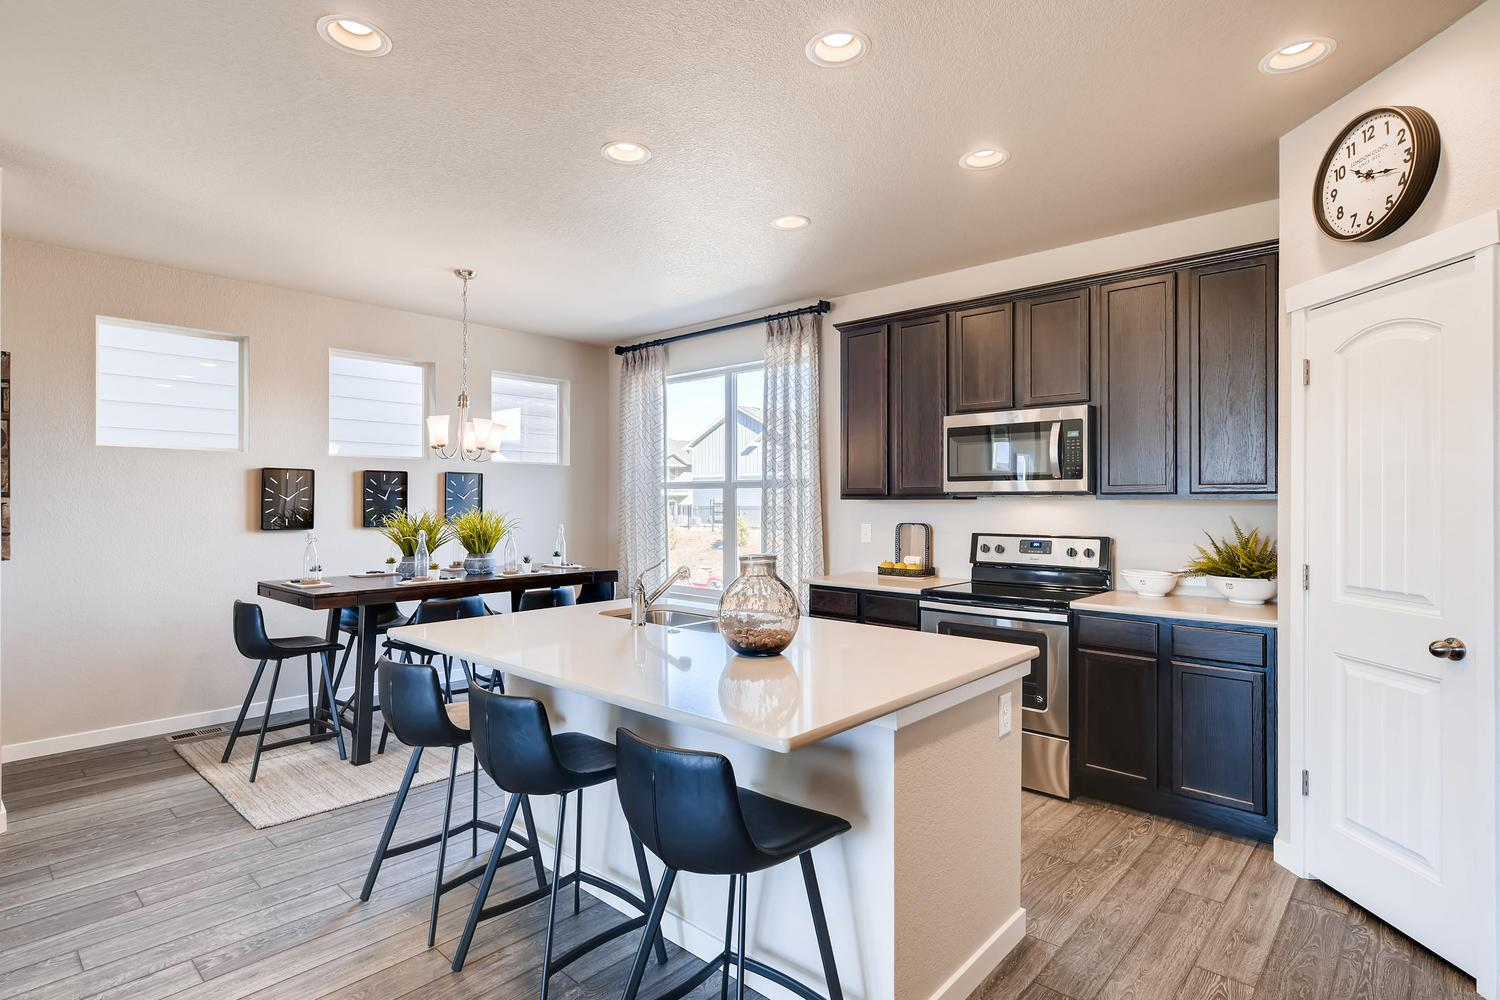 Kitchen featured in the 221 By Classic Homes in Colorado Springs, CO